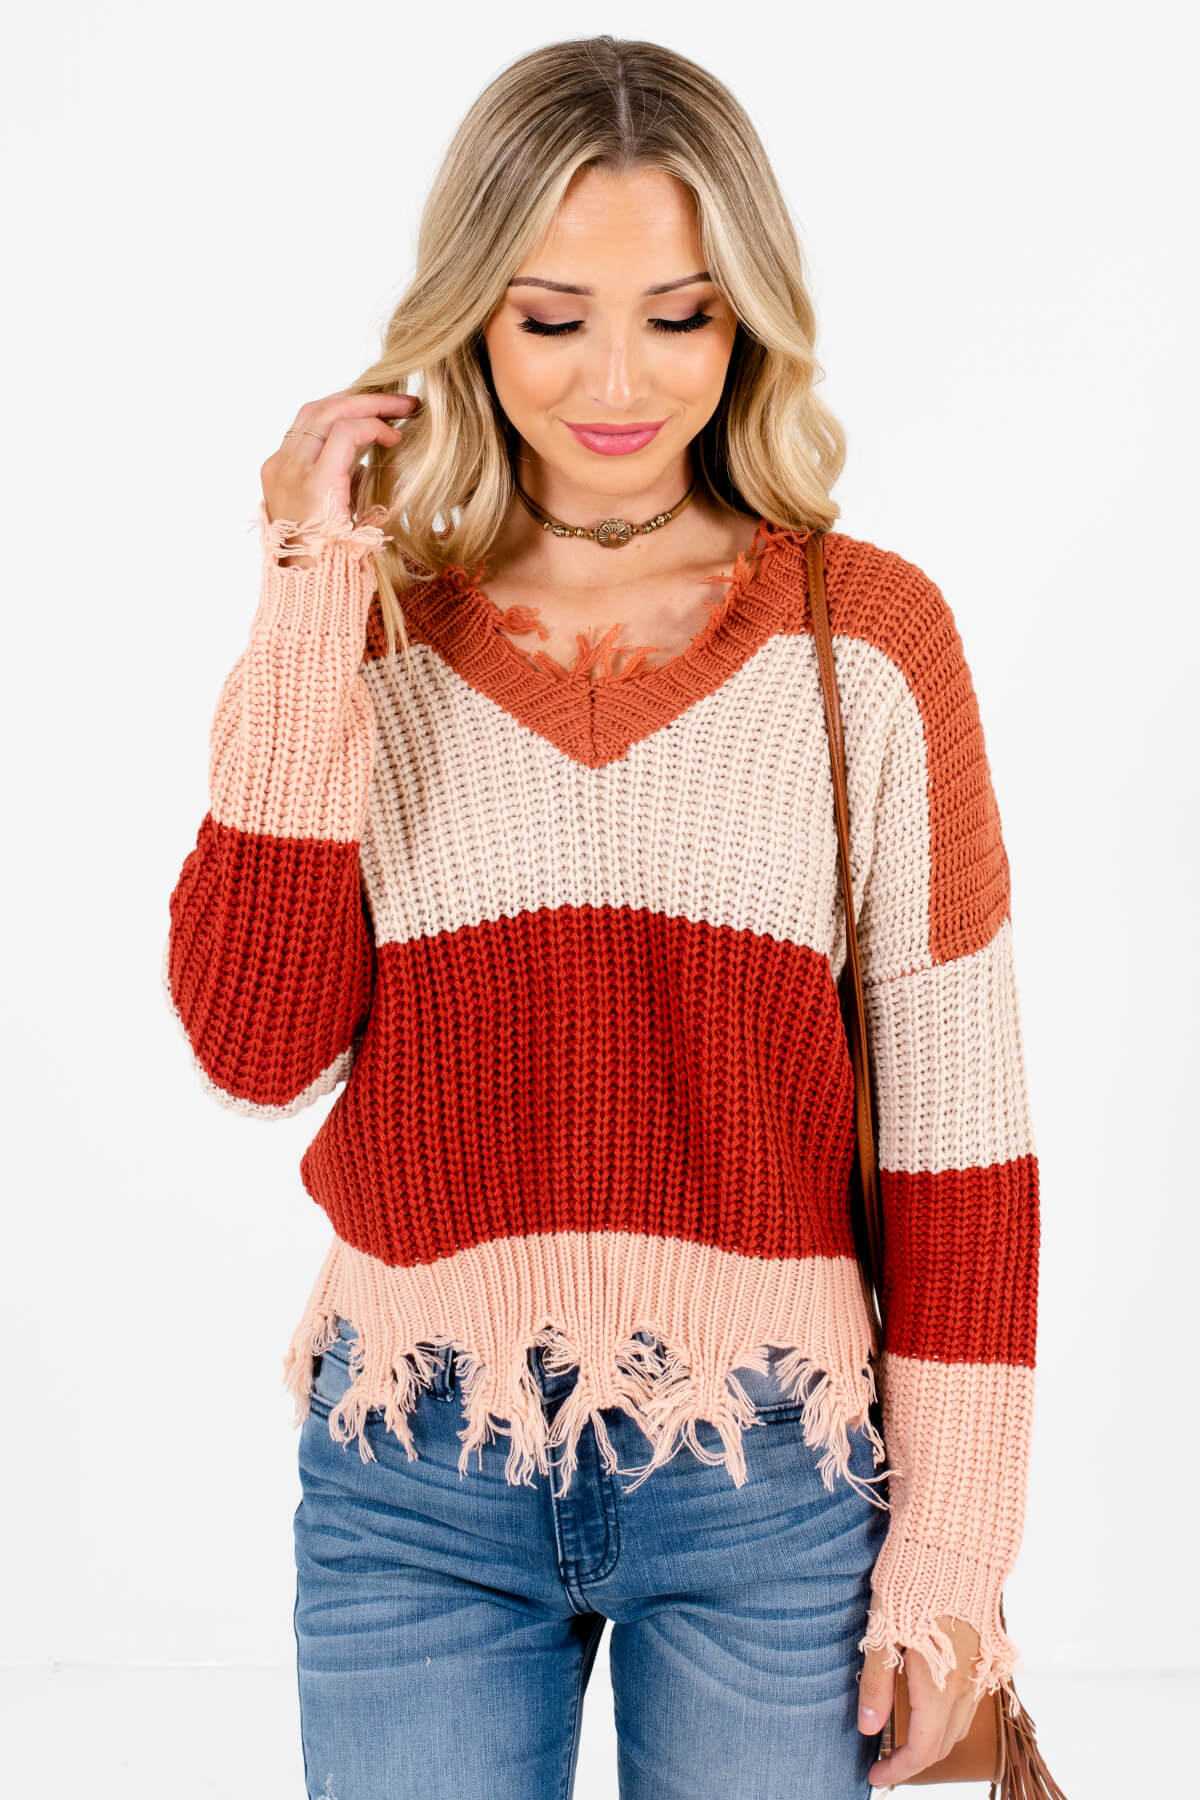 Rust Orange High-Quality Knit Material Boutique Sweaters for Women